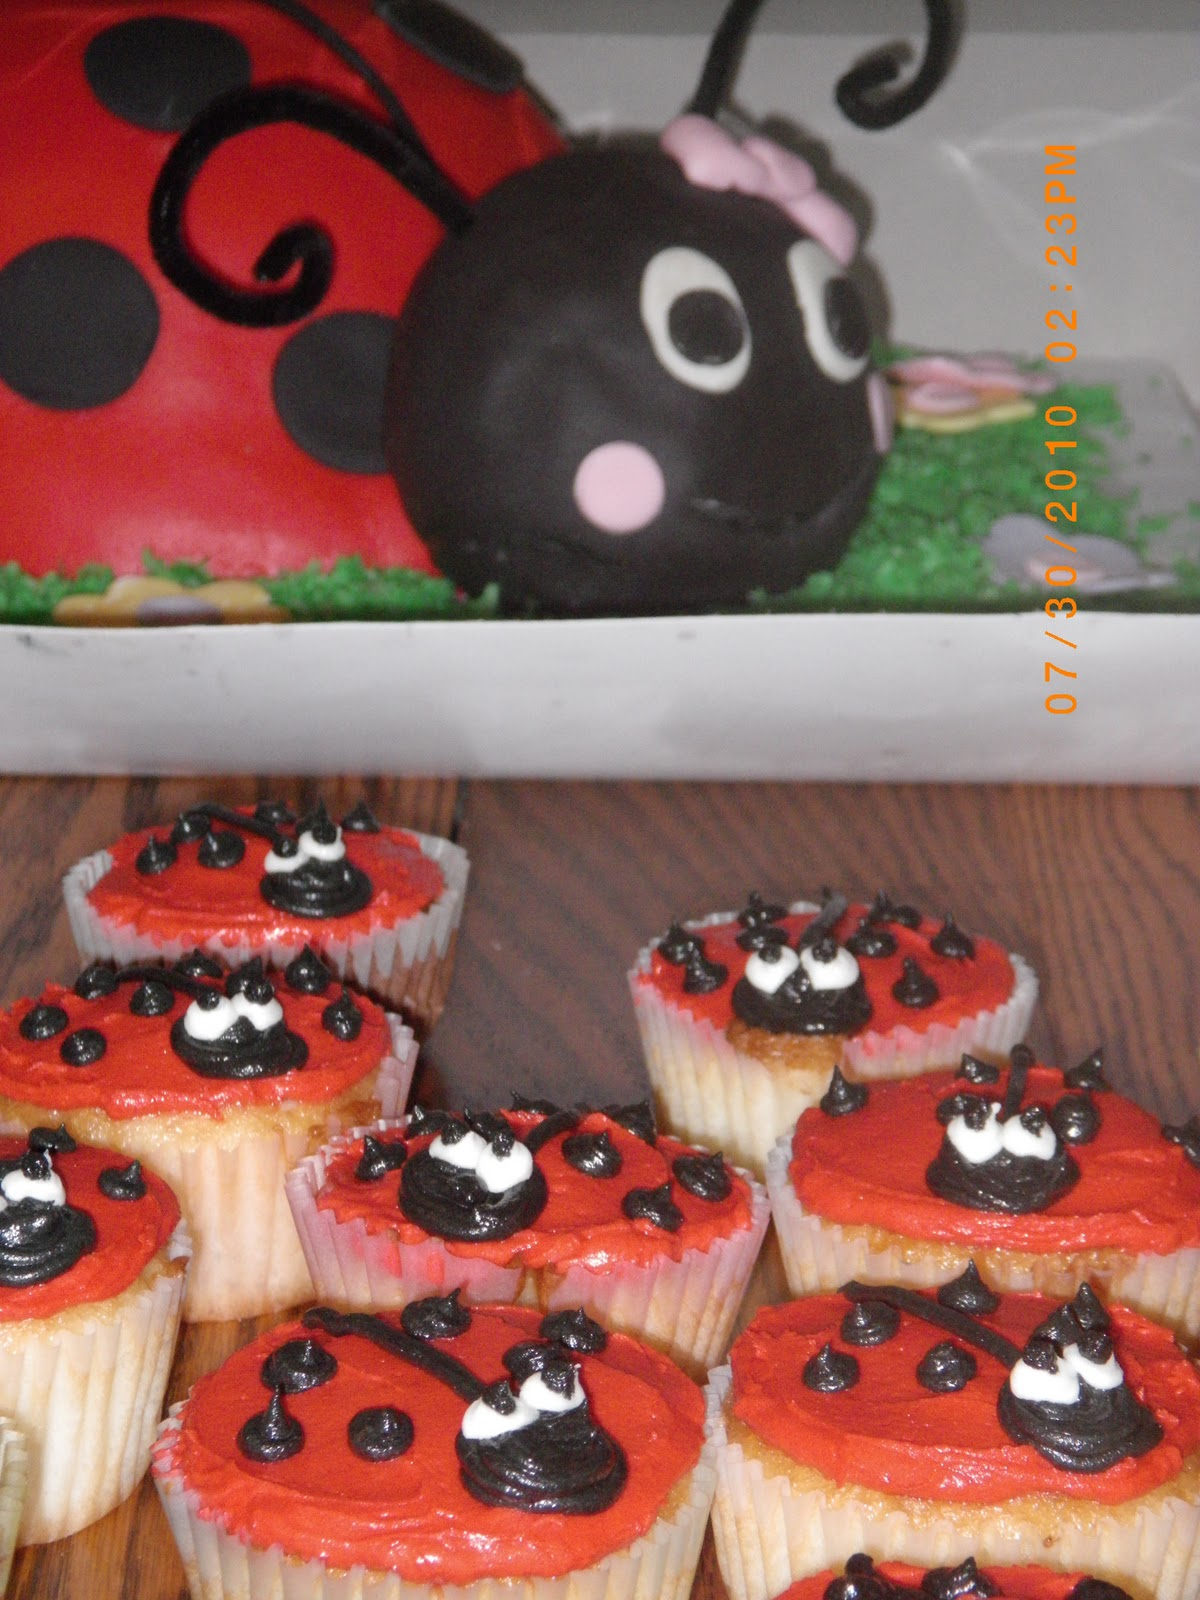 The Ladybug Head Was Made Of Rice Krispie Treats Then Entire Thing Covered In Homemade Marshmallow Fondant Grass Colored Coconut